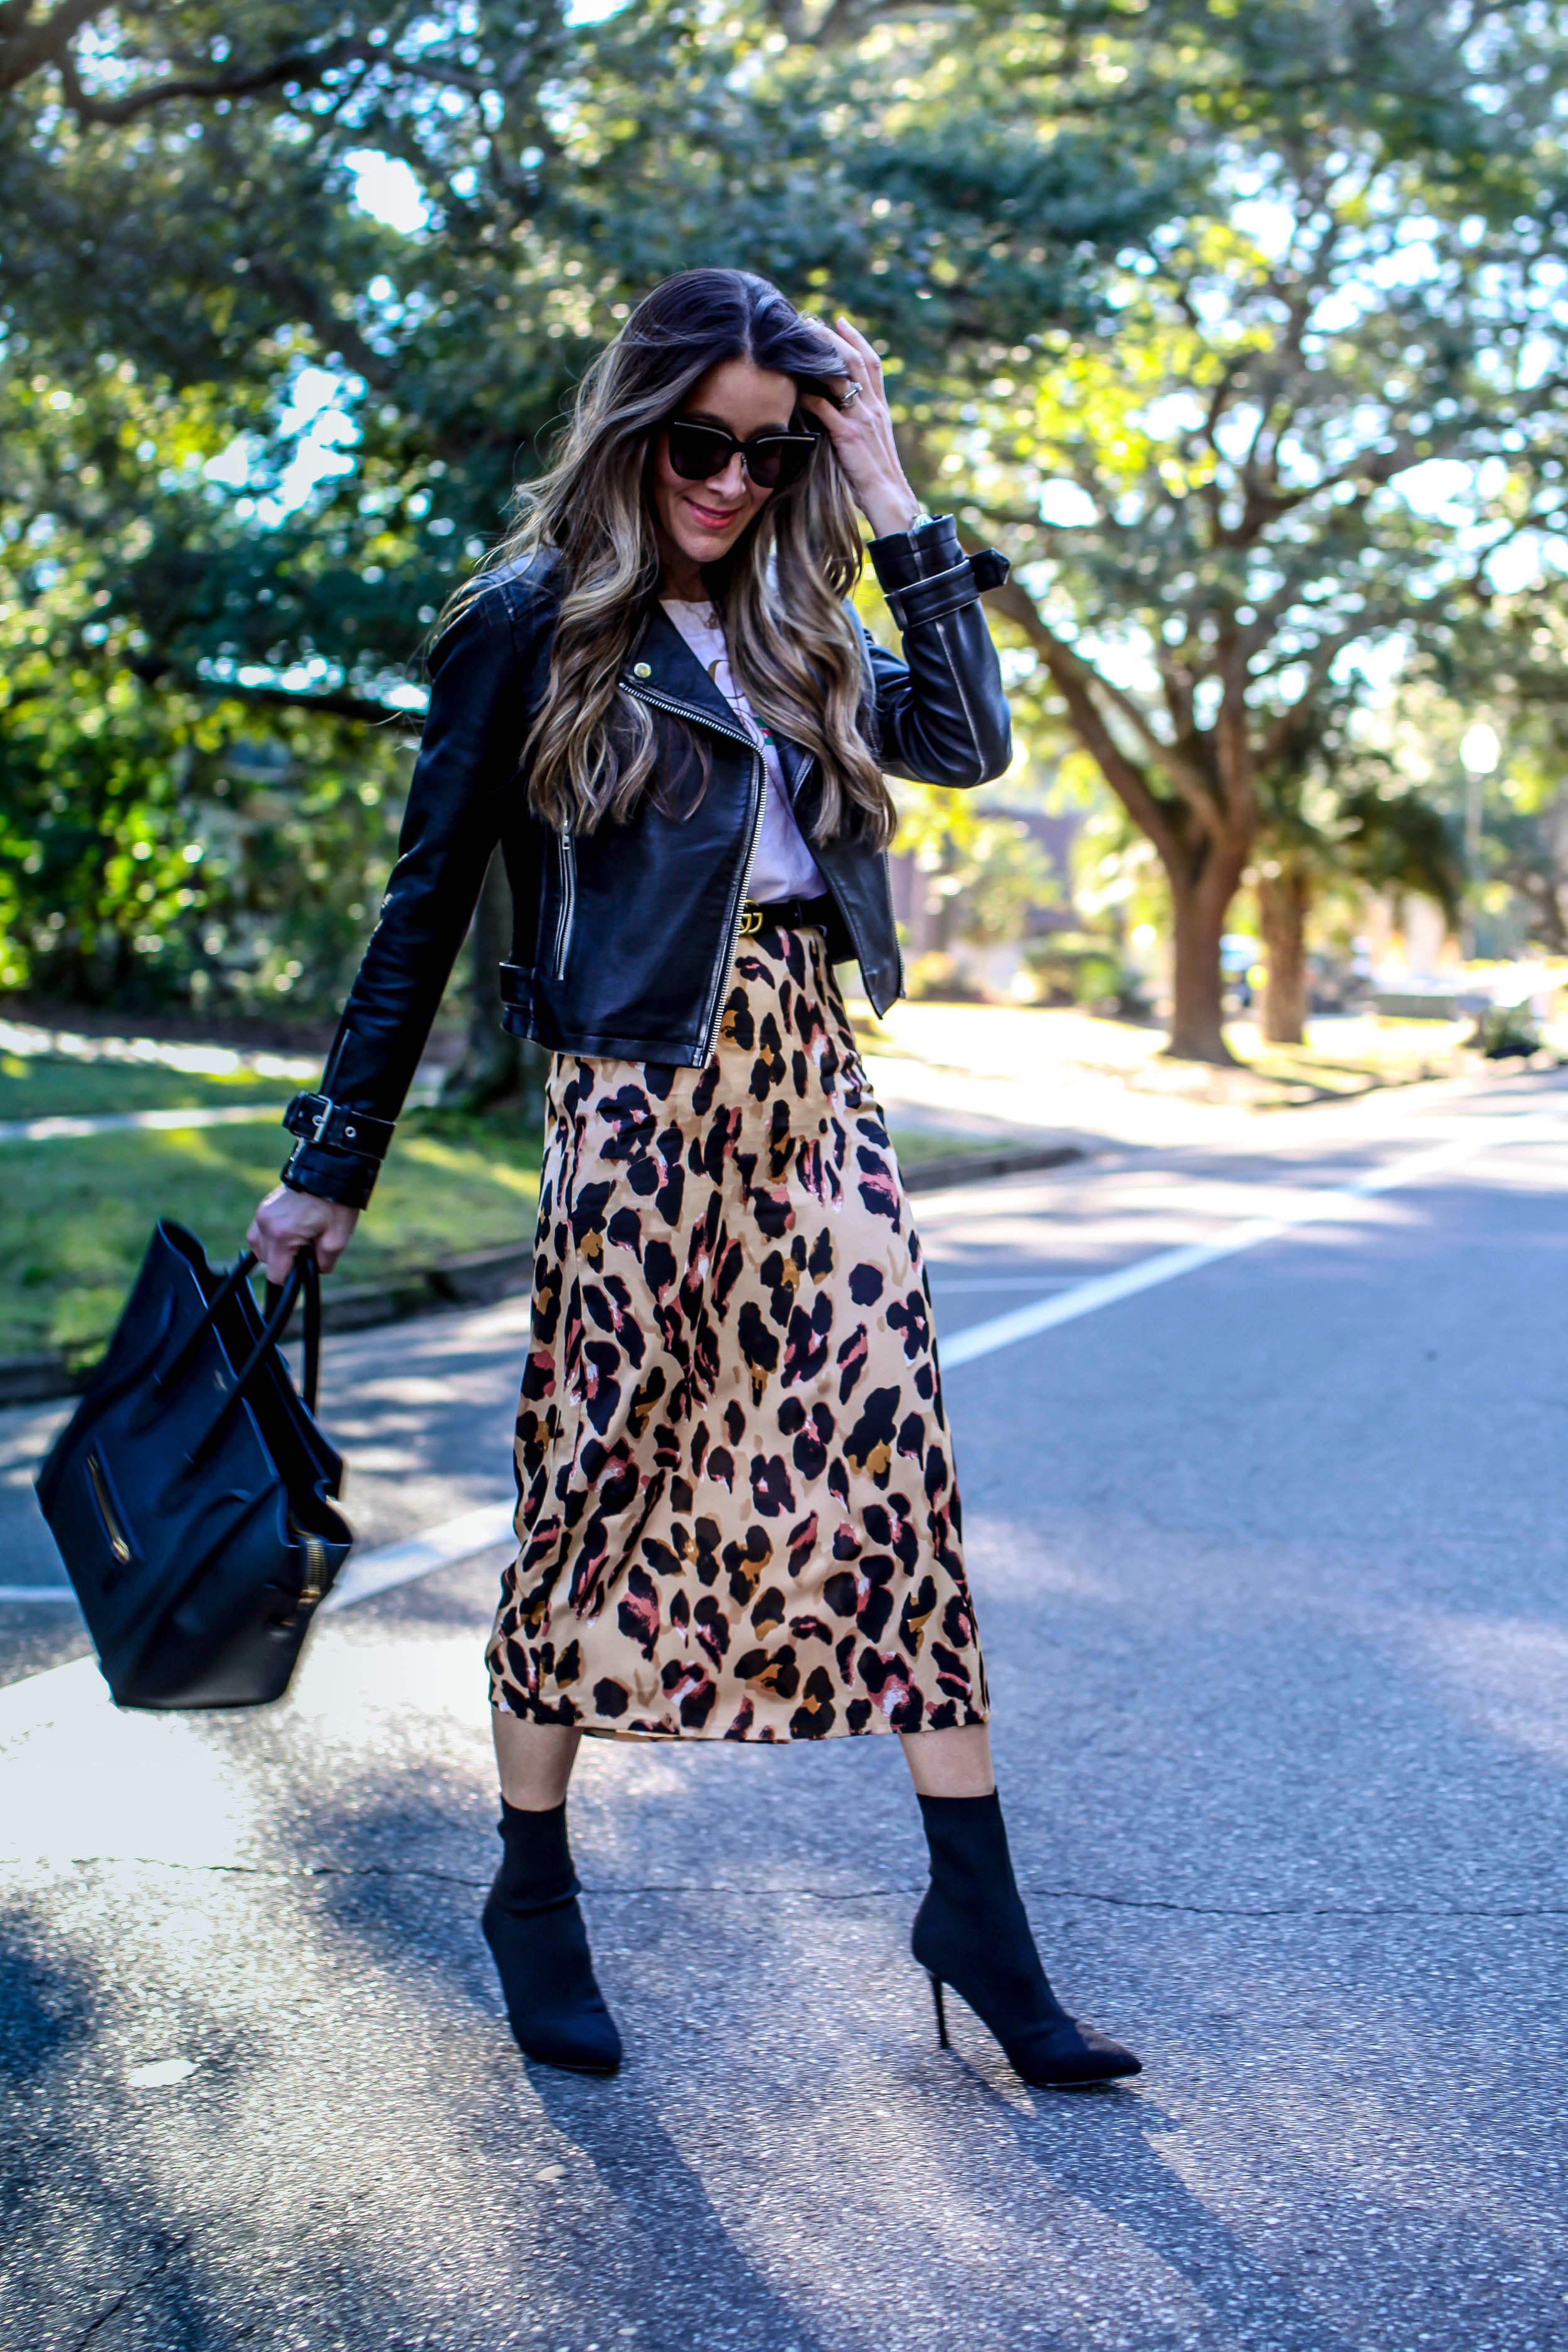 $16 AMAZON SKIRT -  LEOPARD  - OTHER COLORS  HERE  AND  HERE  | FAUX LEATHER JACKET - TOPSHOP - SIMILAR  HERE  AND  HERE  | GUCCI TEE - ORIGINAL  HERE  OR $13 DUPE VERSION  HERE  | HANDBAG - CELINE -  DUPE VERSION   HERE  | BOOTIES -  STEVE MADDEN  | SUNGLASSES - SIMILAR  HERE  | $6 DOLLAR NECKLACE SET -  HERE  AND  HERE